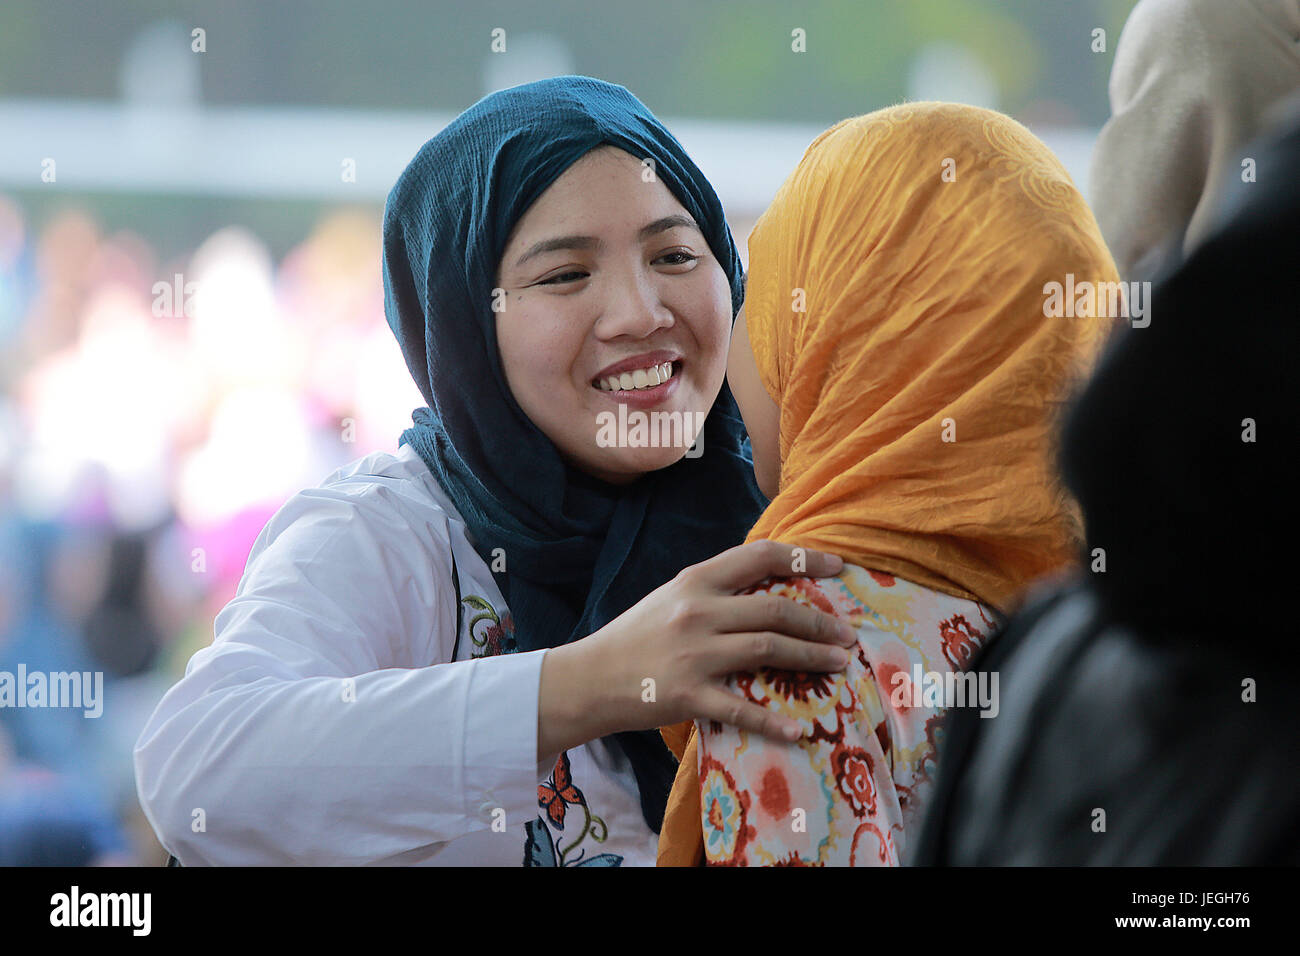 Quezon city philippines 25th june 2017 muslim women greet each muslim women greet each other after a prayer in celebration of the eid al fitr in quezon city the philippines june 25 2017 kristyandbryce Images